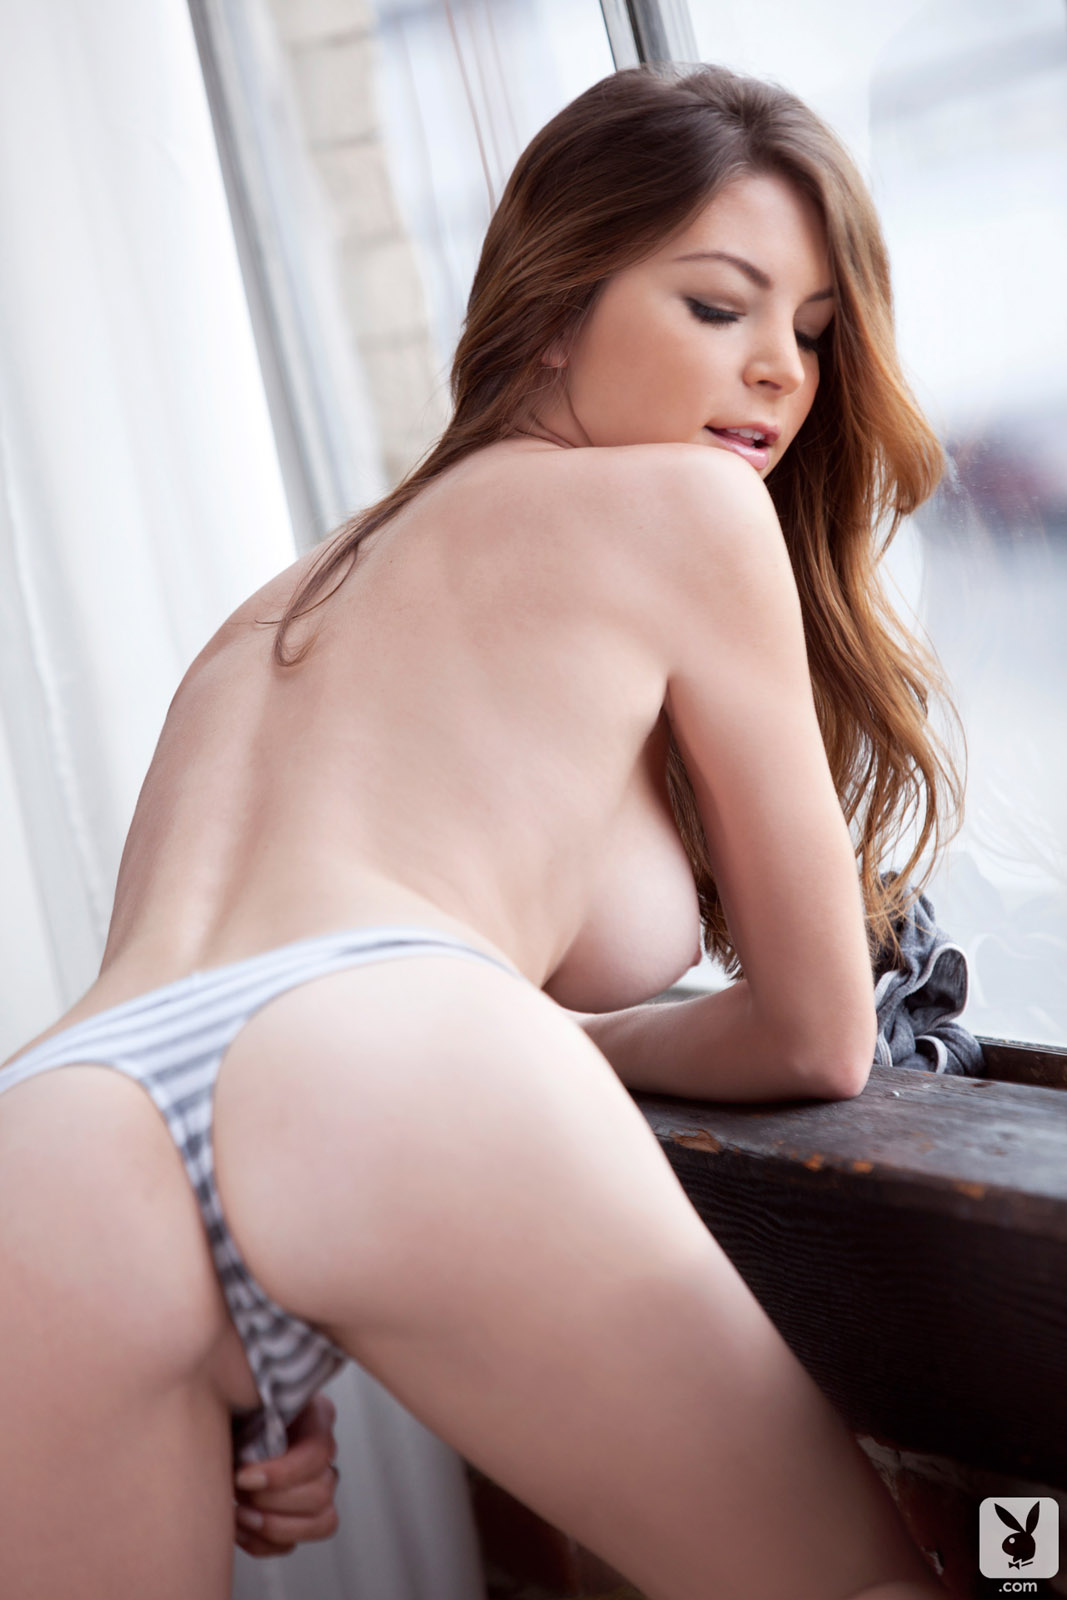 Amber Sym Nude sexy amber sym strips - sexy gallery full photo #93281